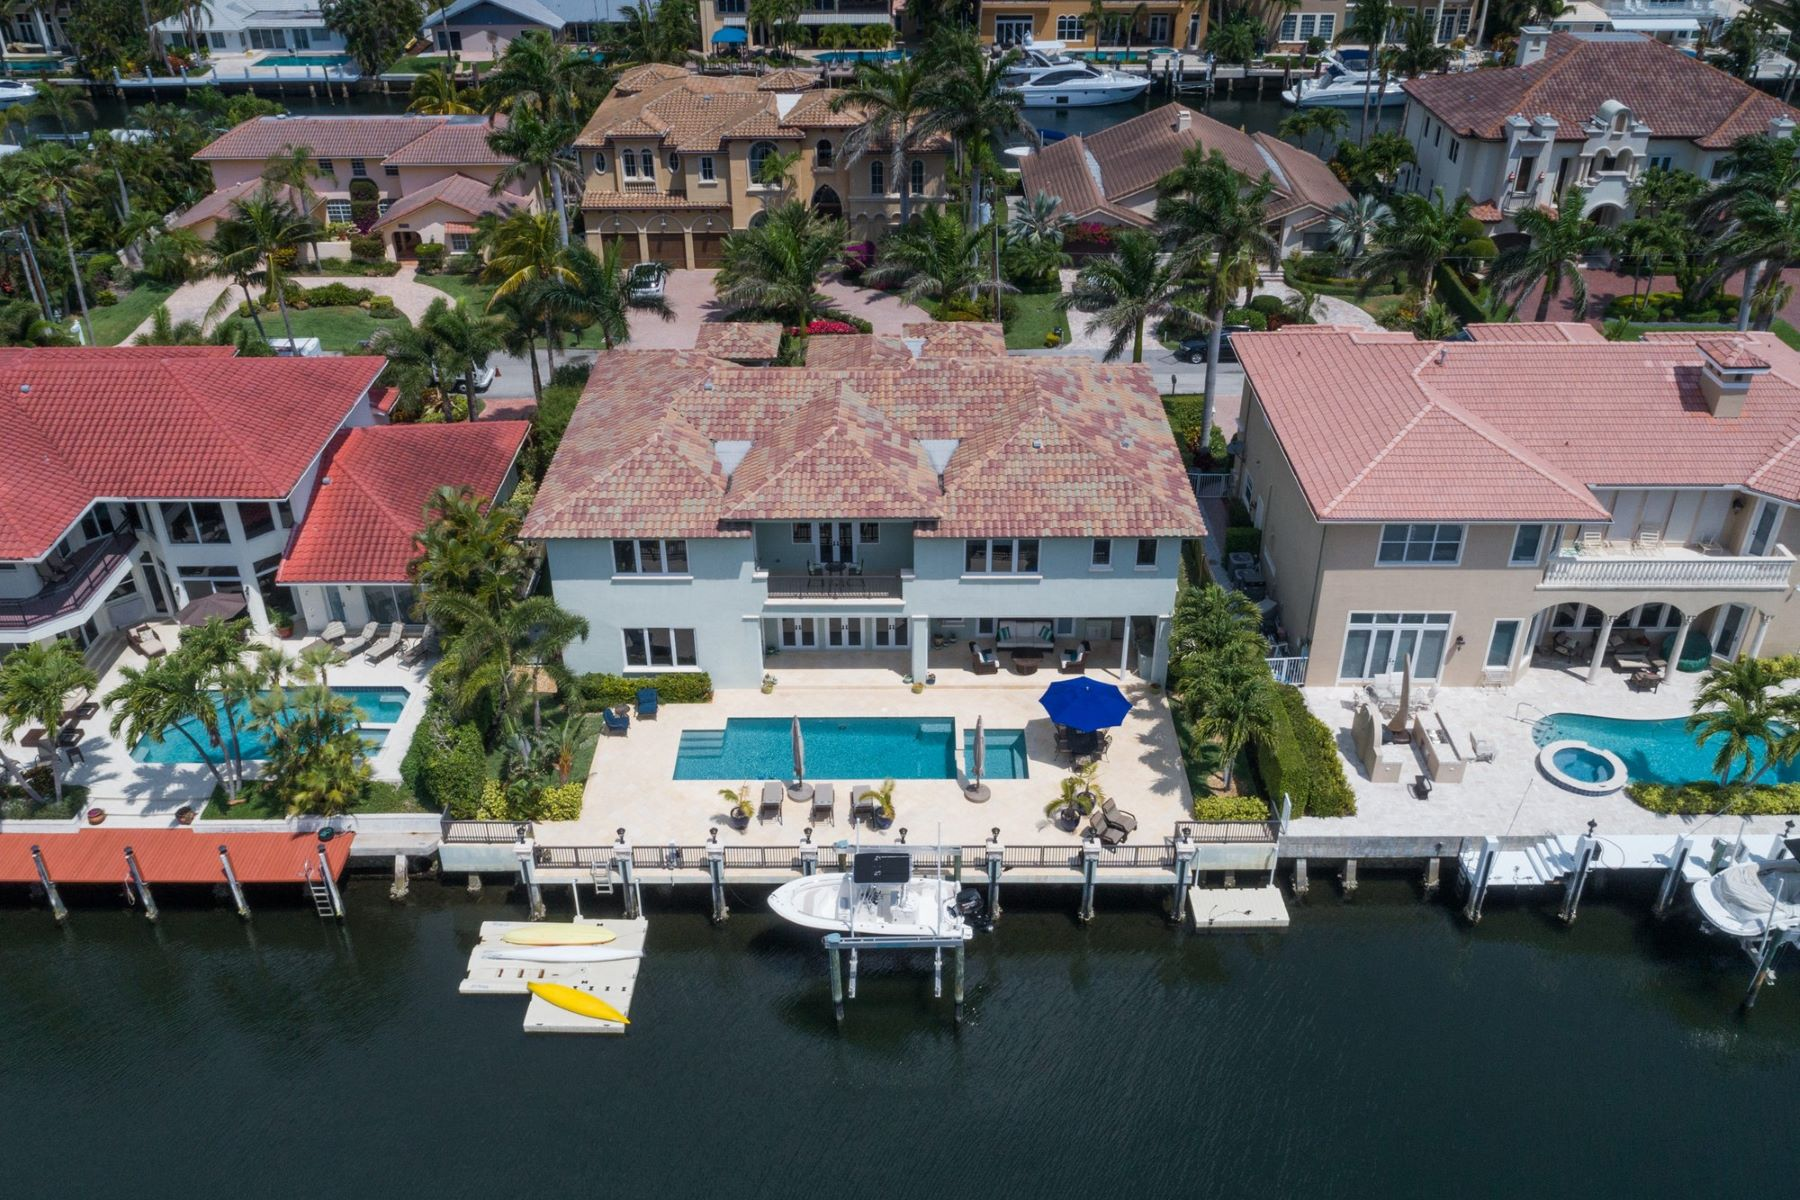 Single Family Home for Active at 936 Hyacinth Dr , Delray Beach, FL 33483 936 Hyacinth Dr Delray Beach, Florida 33483 United States